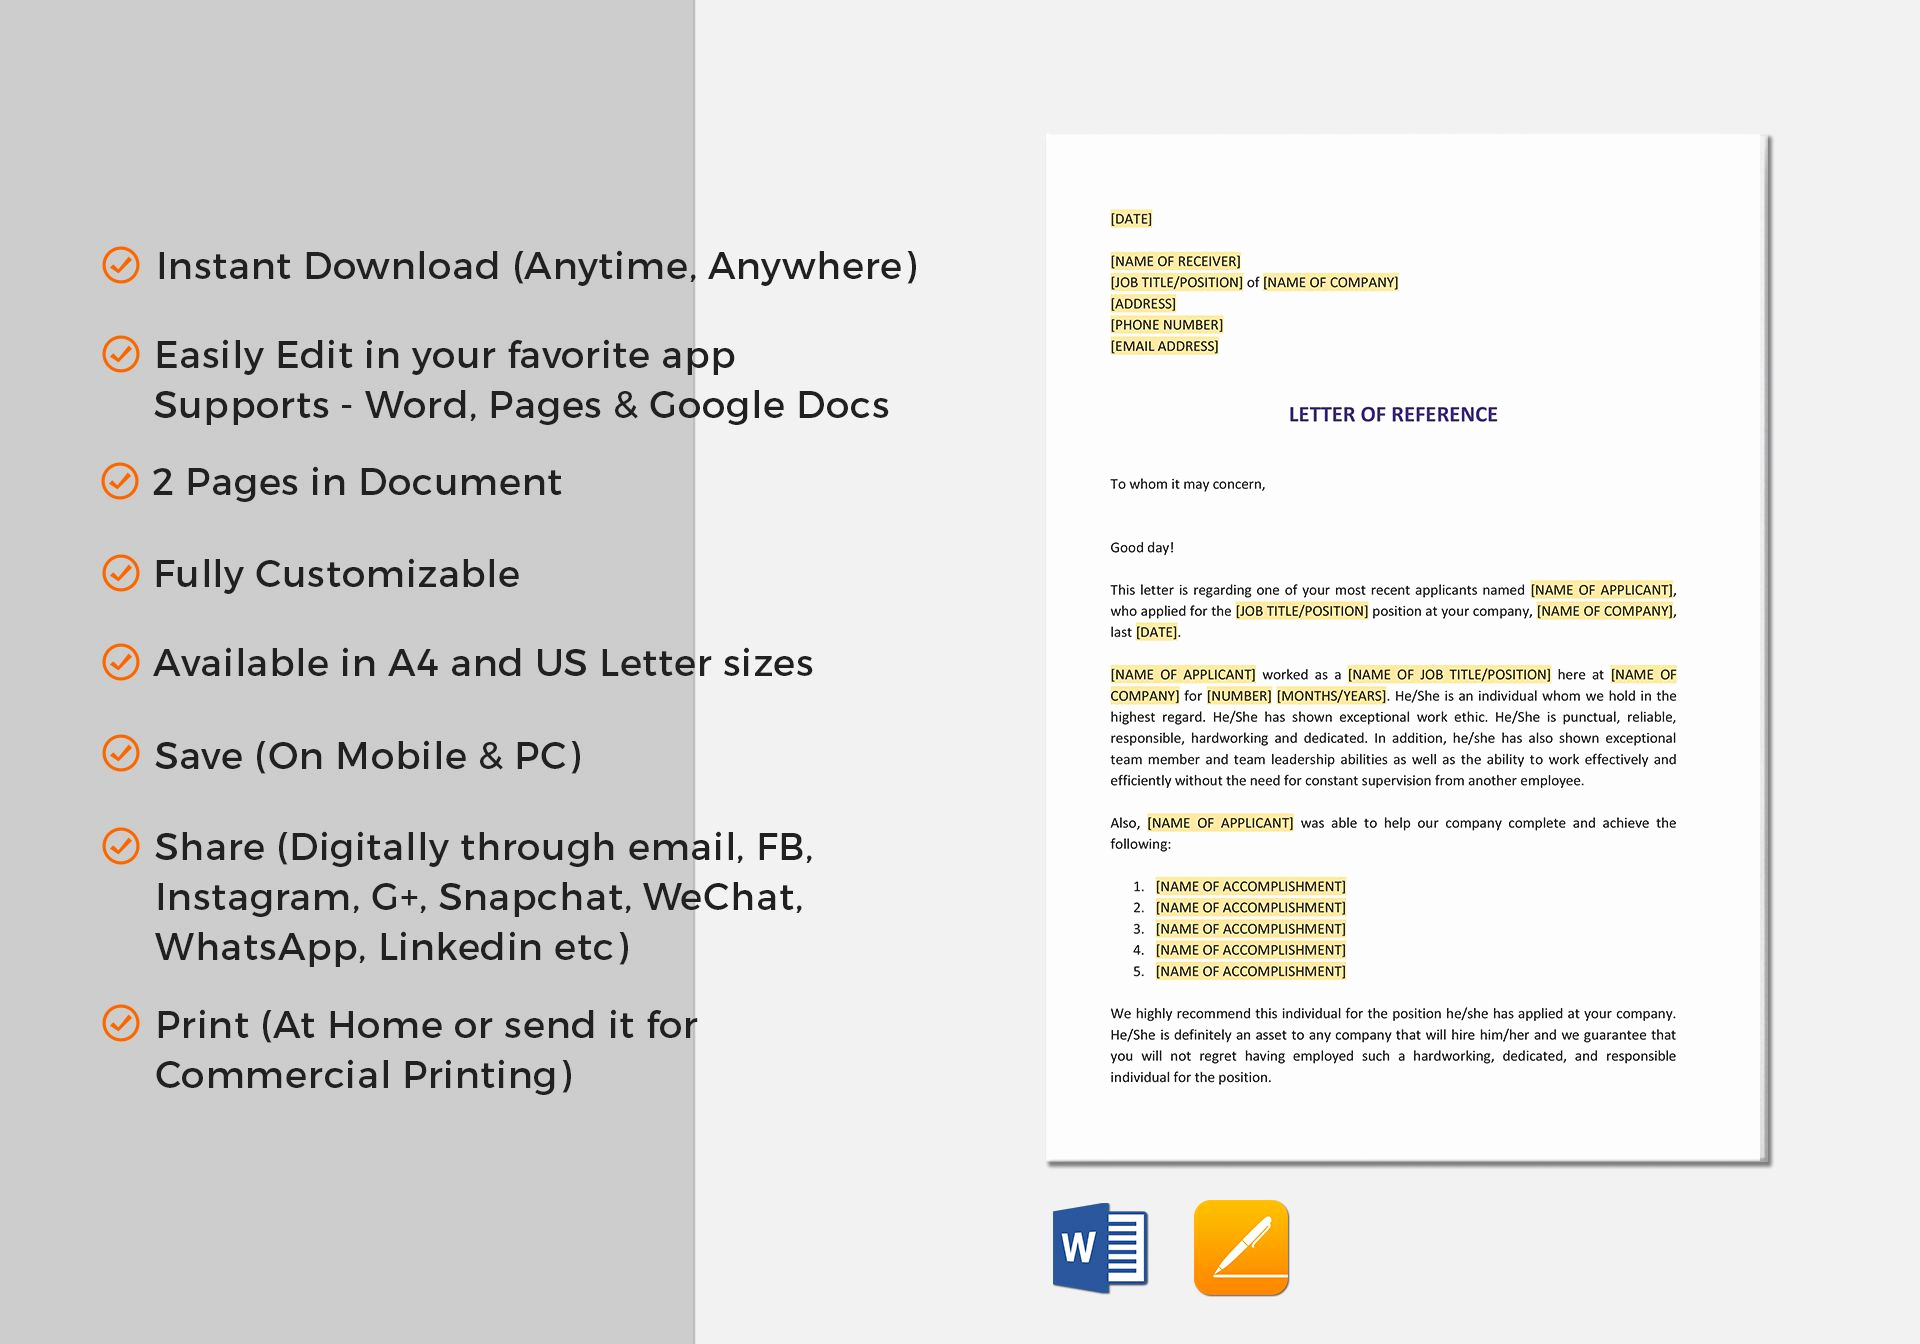 Google Docs Letter Template New Short Letter Of Reference Template In Word Google Docs